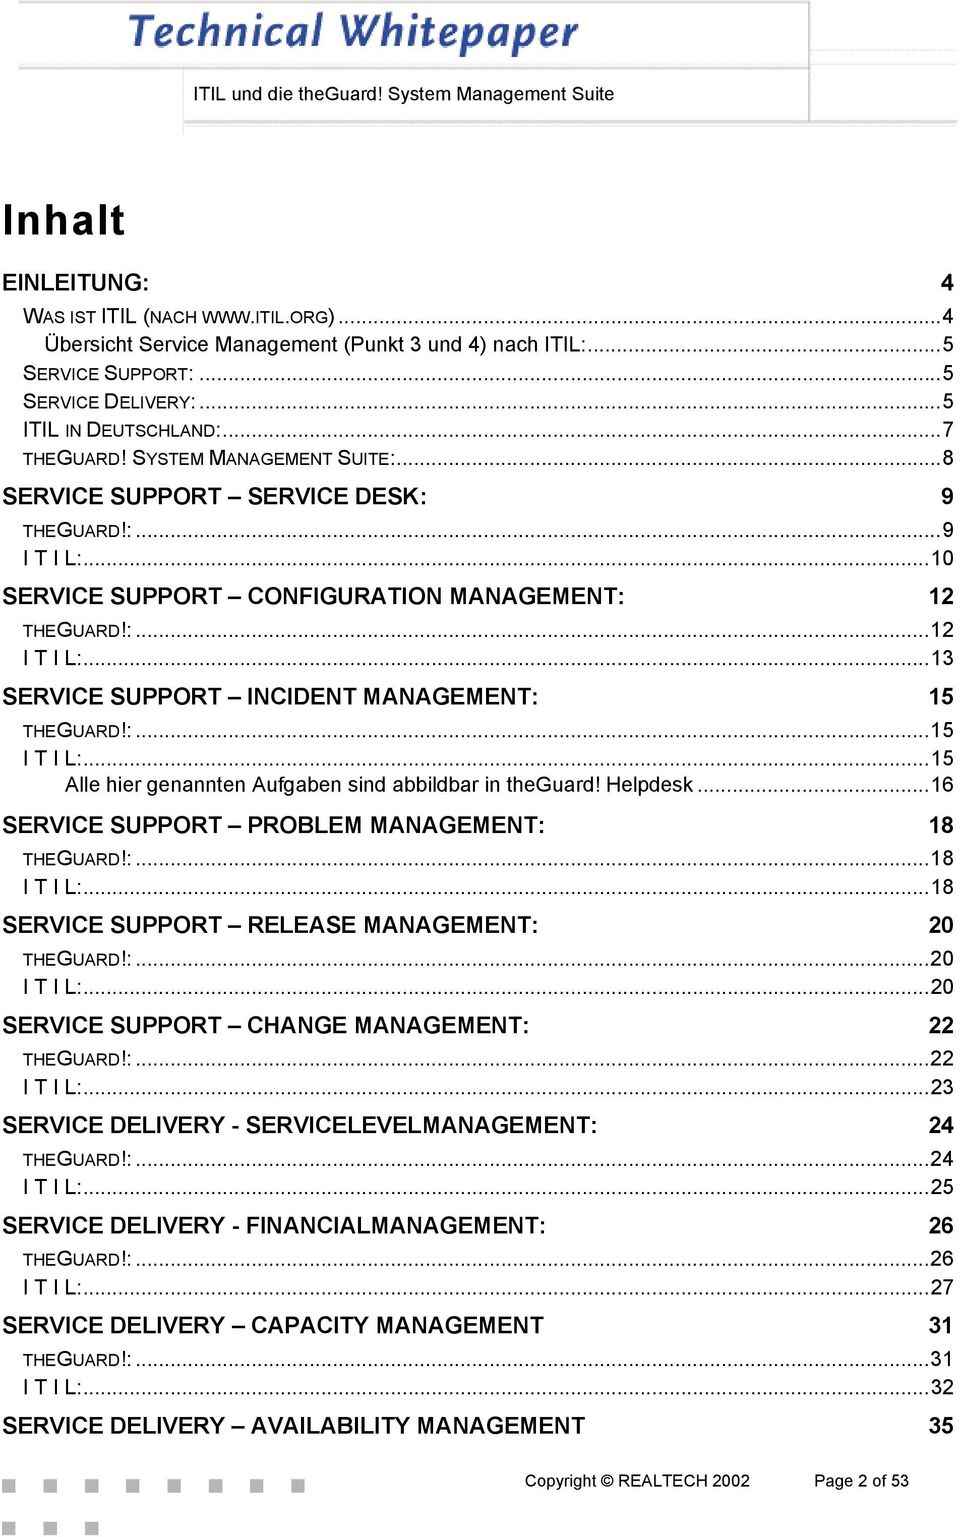 ..13 SERVICE SUPPORT INCIDENT MANAGEMENT: 15 THEGUARD!:...15 I T I L:...15 Alle hier genannten Aufgaben sind abbildbar in theguard! Helpdesk...16 SERVICE SUPPORT PROBLEM MANAGEMENT: 18 THEGUARD!:...18 I T I L:.